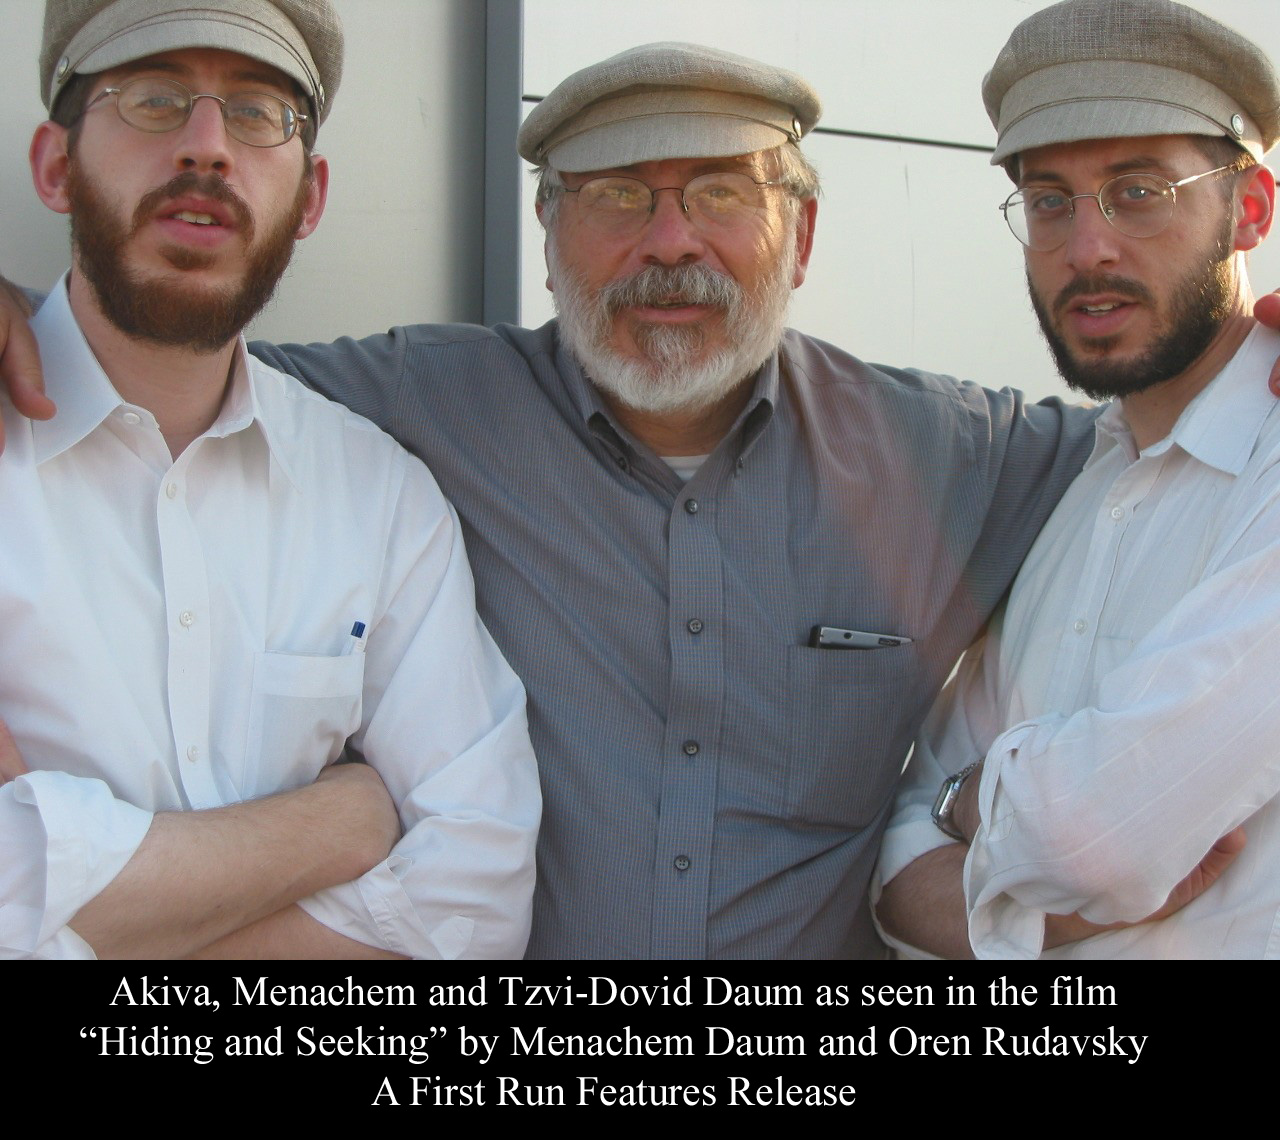 hiding and seeking menachem daum Find similar and related movies for hiding and seeking: faith and tolerance after the holocaust (2003) - menachem daum, oren rudavsky on allmovie.